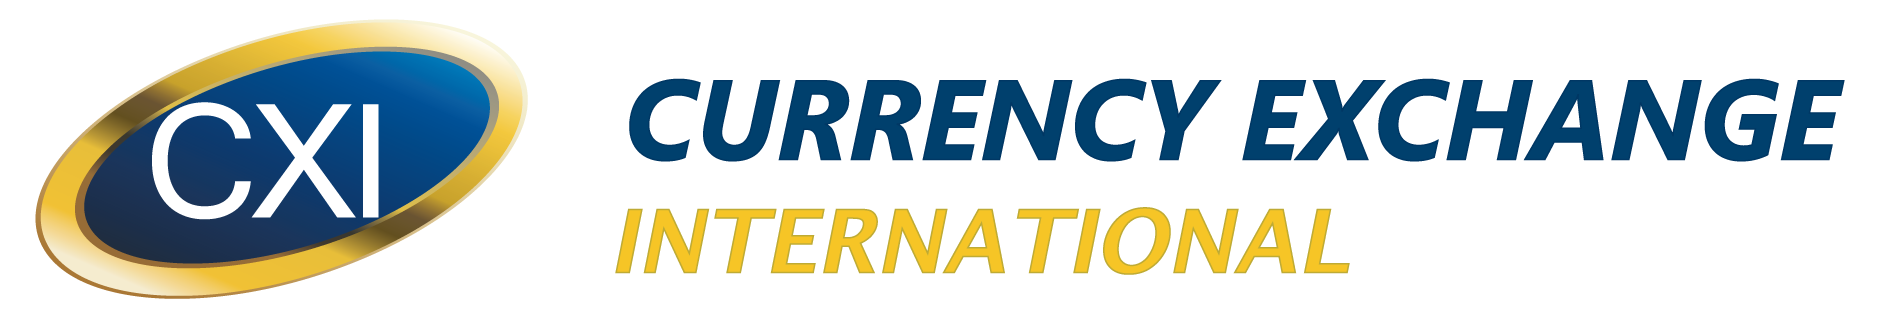 Currency Exchange International Corp A Leading Provider Of Foreign Technology And Services In North America Including Exchanging